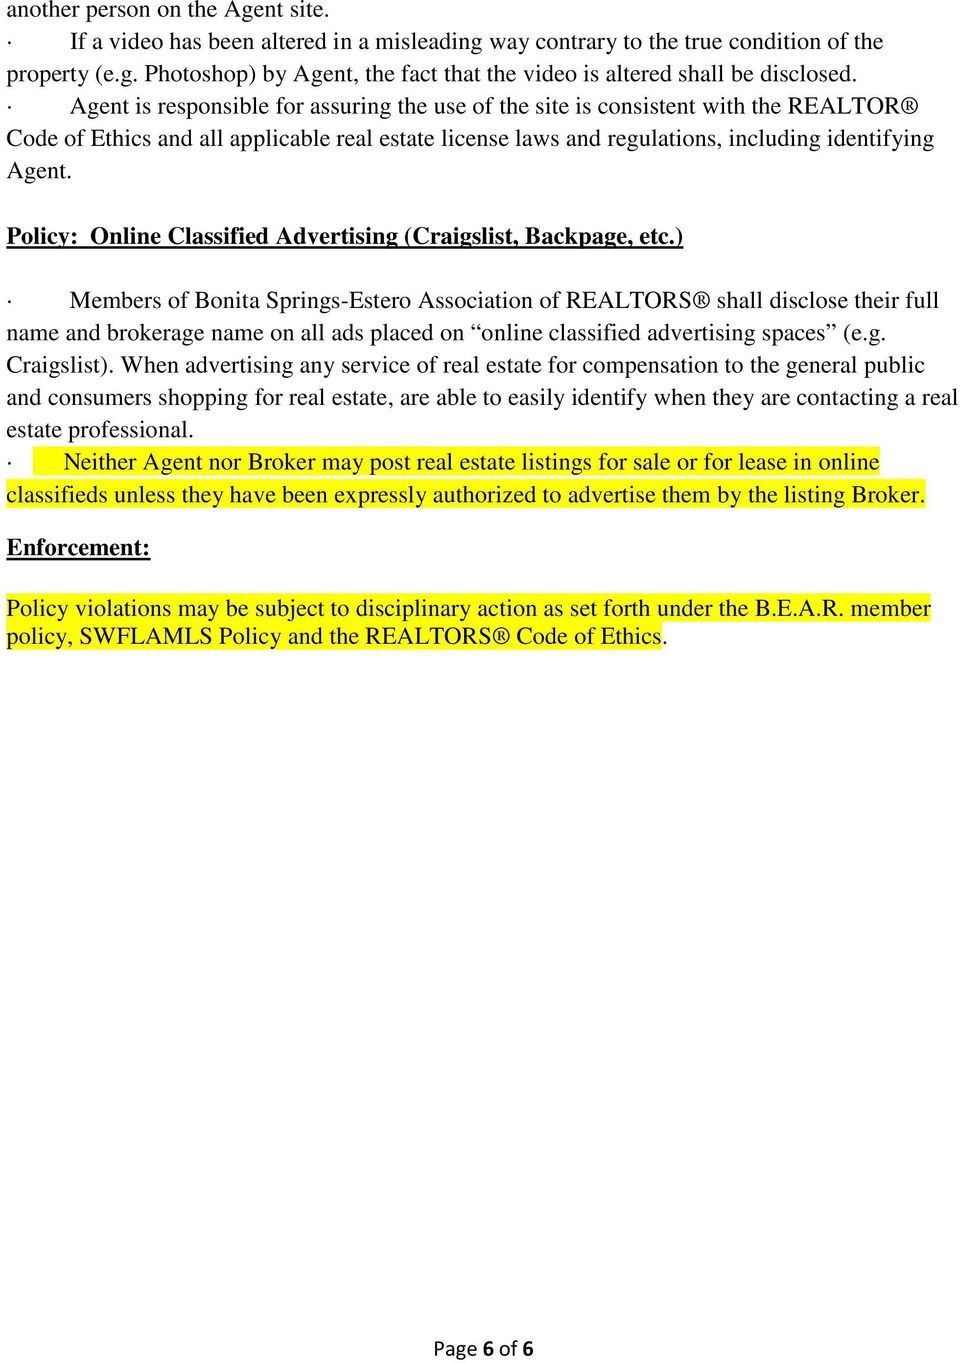 Policy: Online Classified Advertising (Craigslist, Backpage, etc.